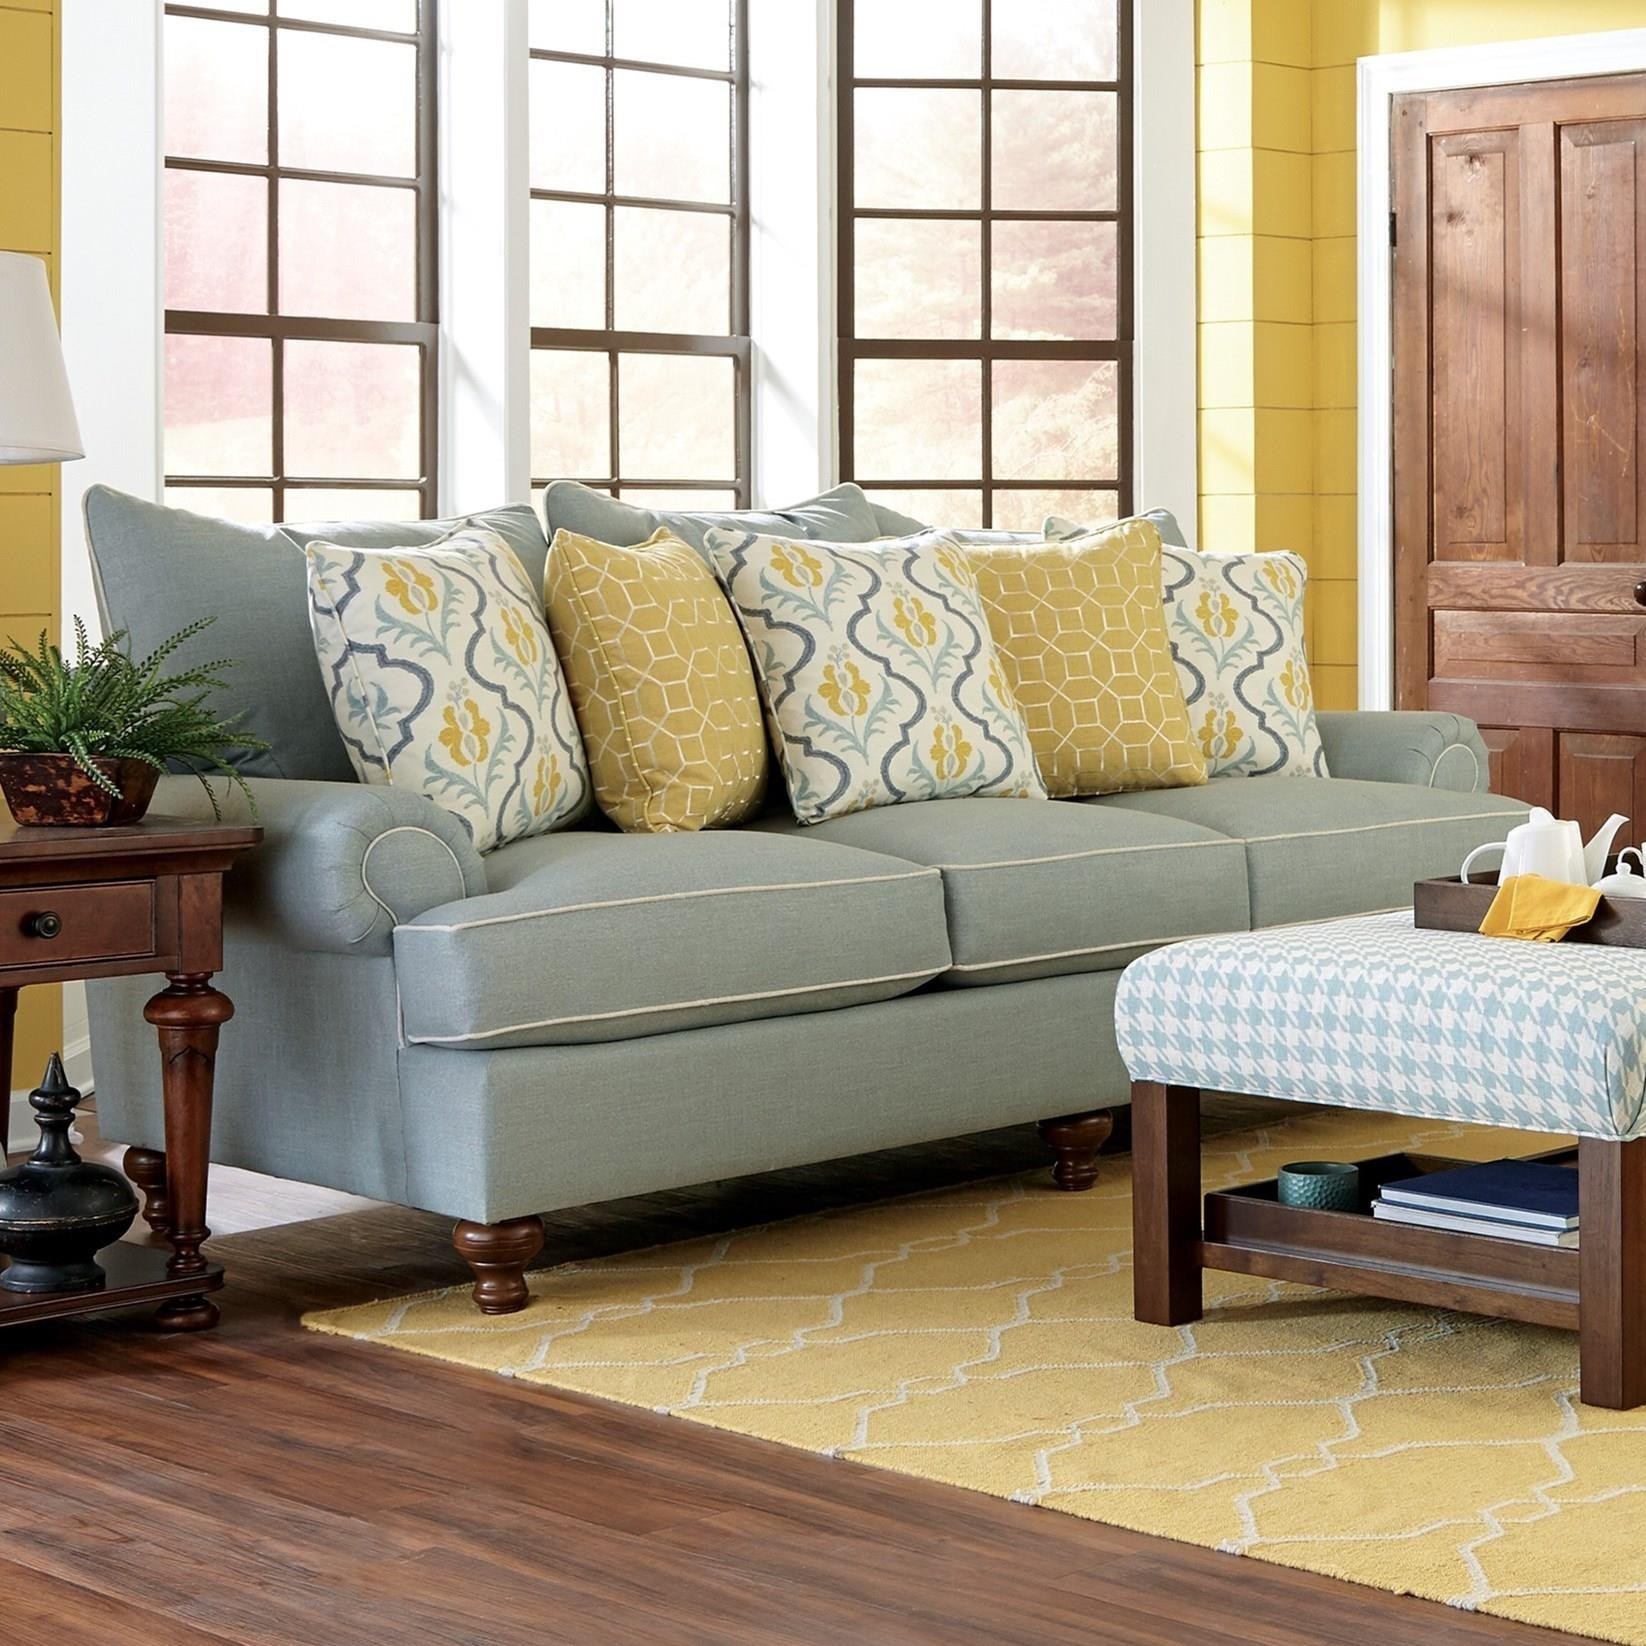 craftmaster sectional sofa reviews cushions replacement bangalore paula deen awesome home